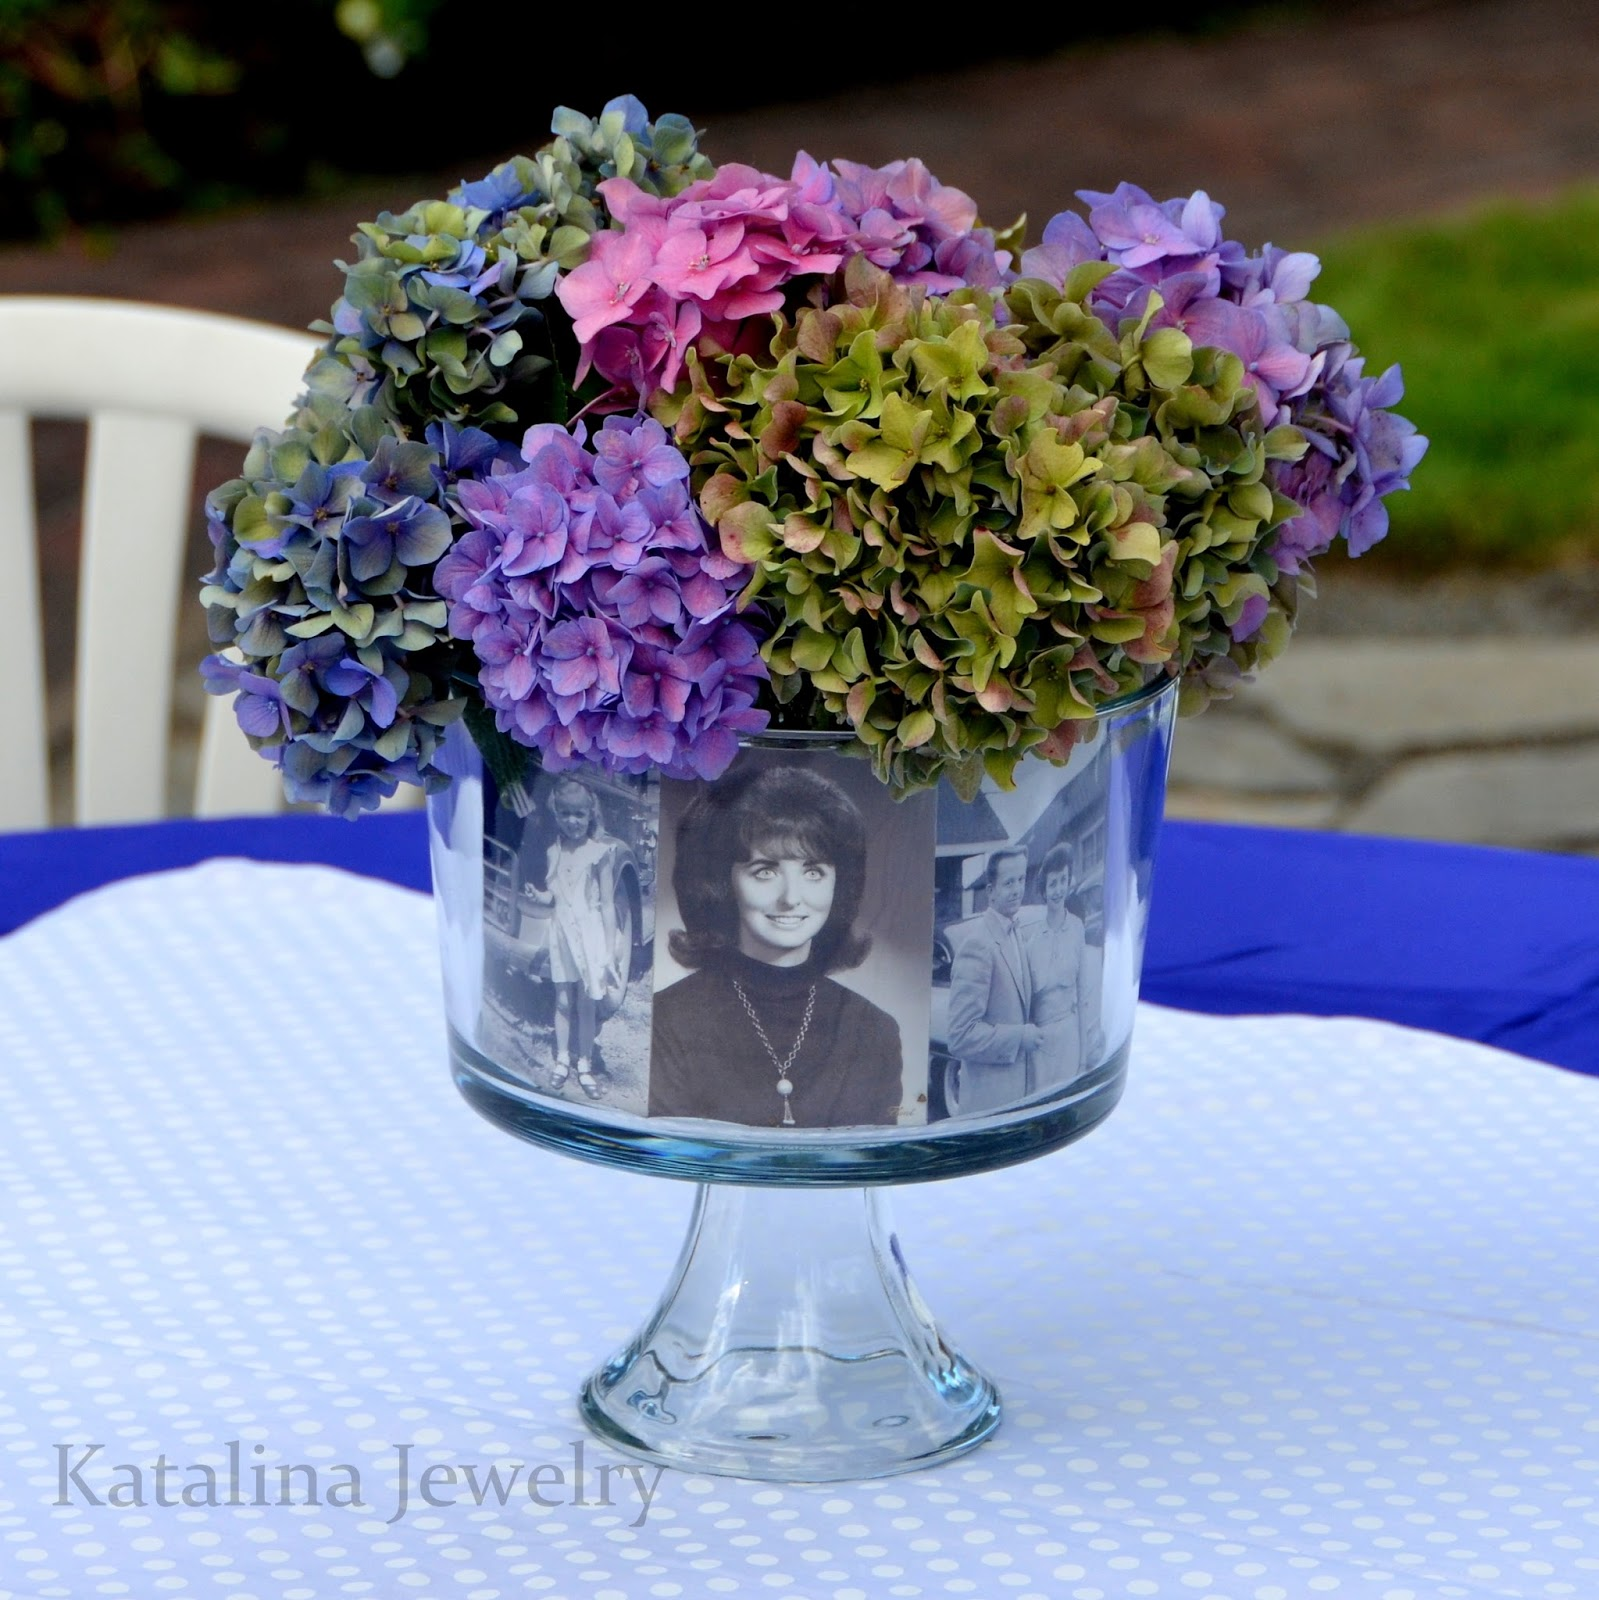 Katalina Jewelry: Easy Personalized Photo & Foral Centerpiece